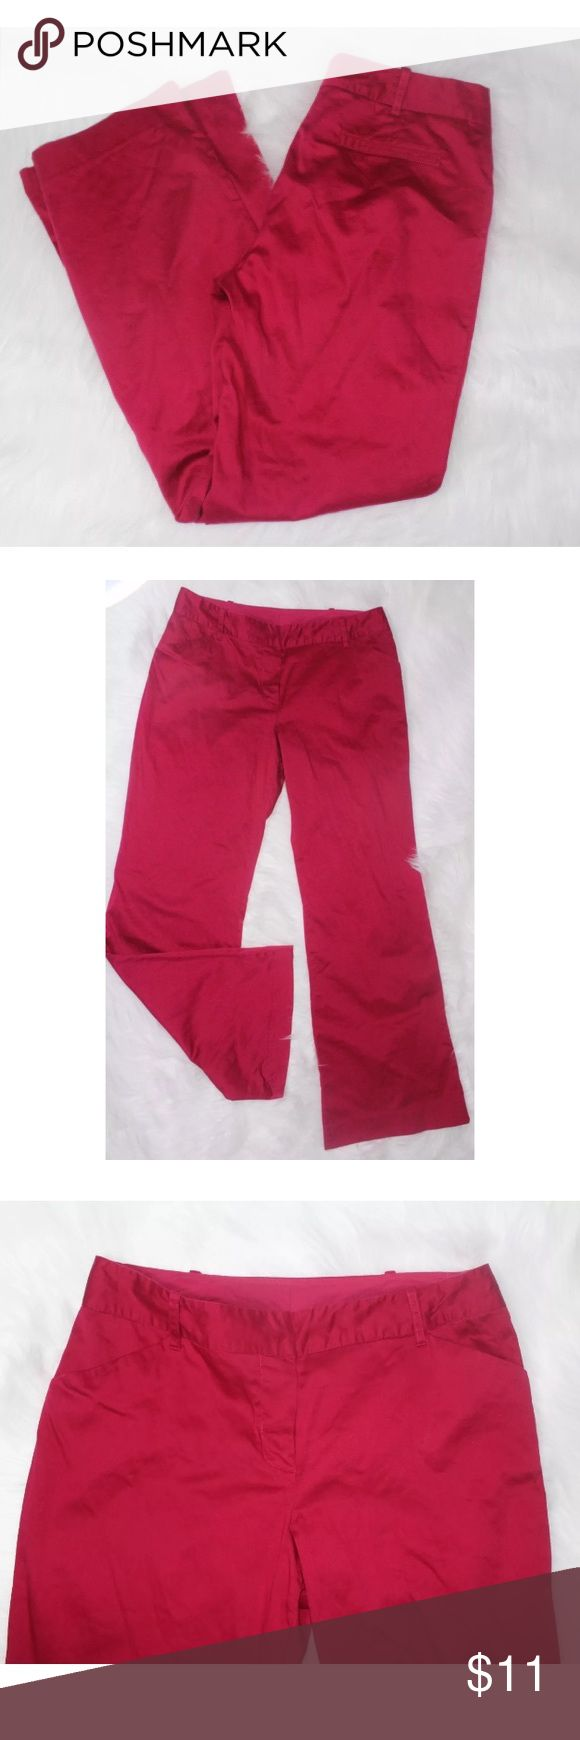 A. Byer Magenta Pink Dress Flare Slacks Pants A. Byer Magenta Pink Dress Flare Slacks Pants Juniors Sz 9 Casual Career cute C •Inseam 30 inches •Waist 15 1/2 inches •97% Cotton •3% Spandex A. byer Pants Boot Cut & Flare